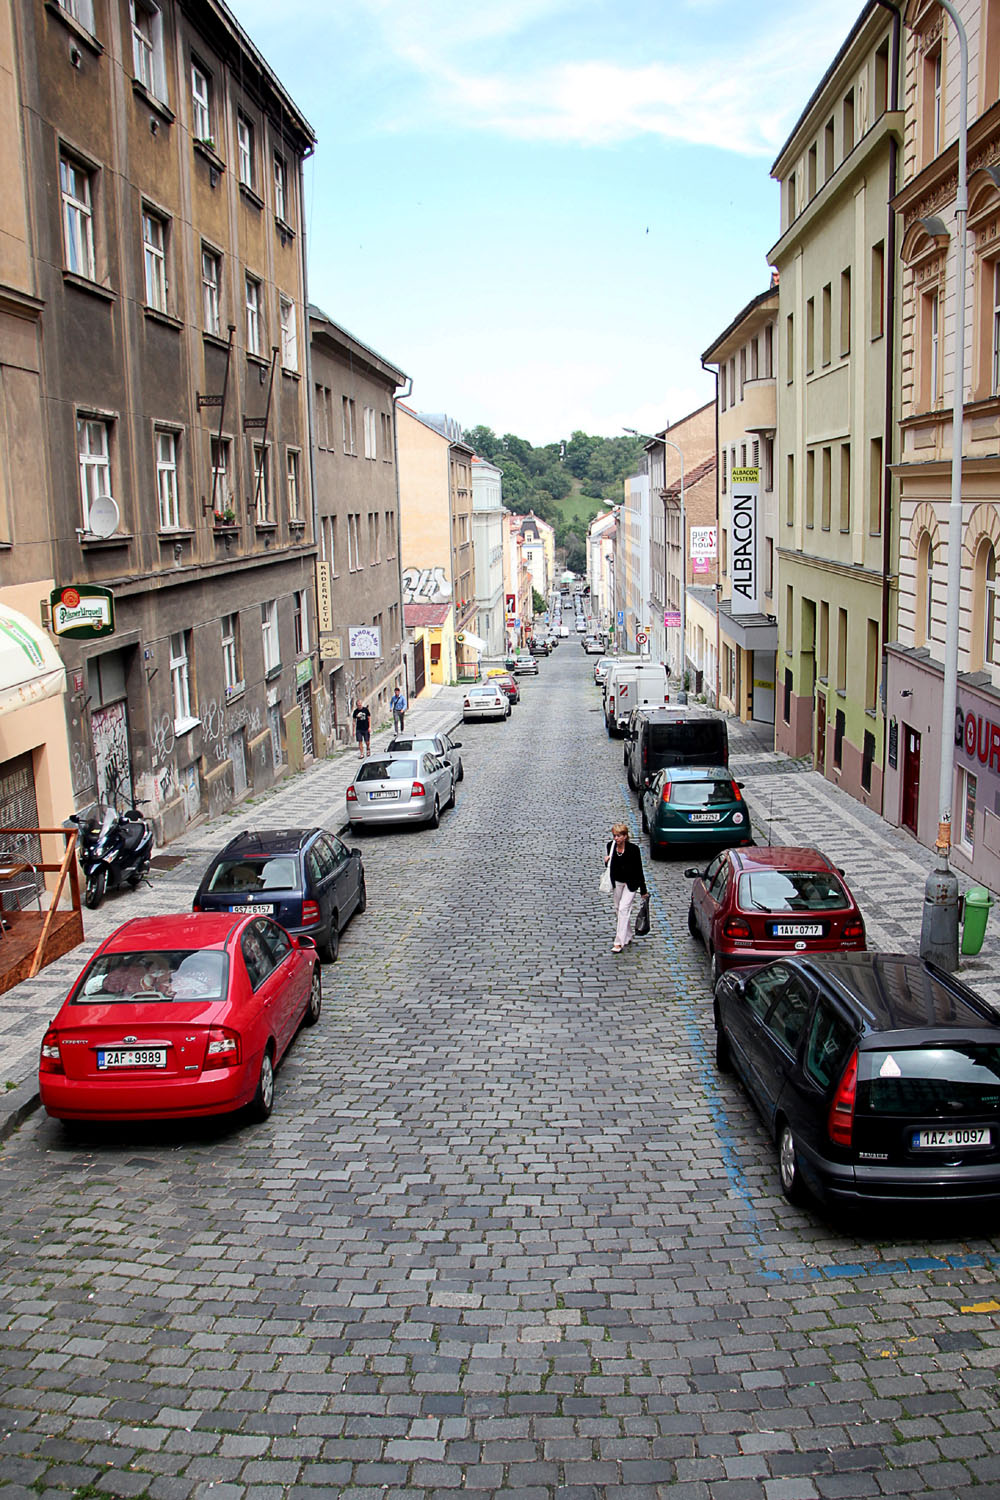 The other side of Prague